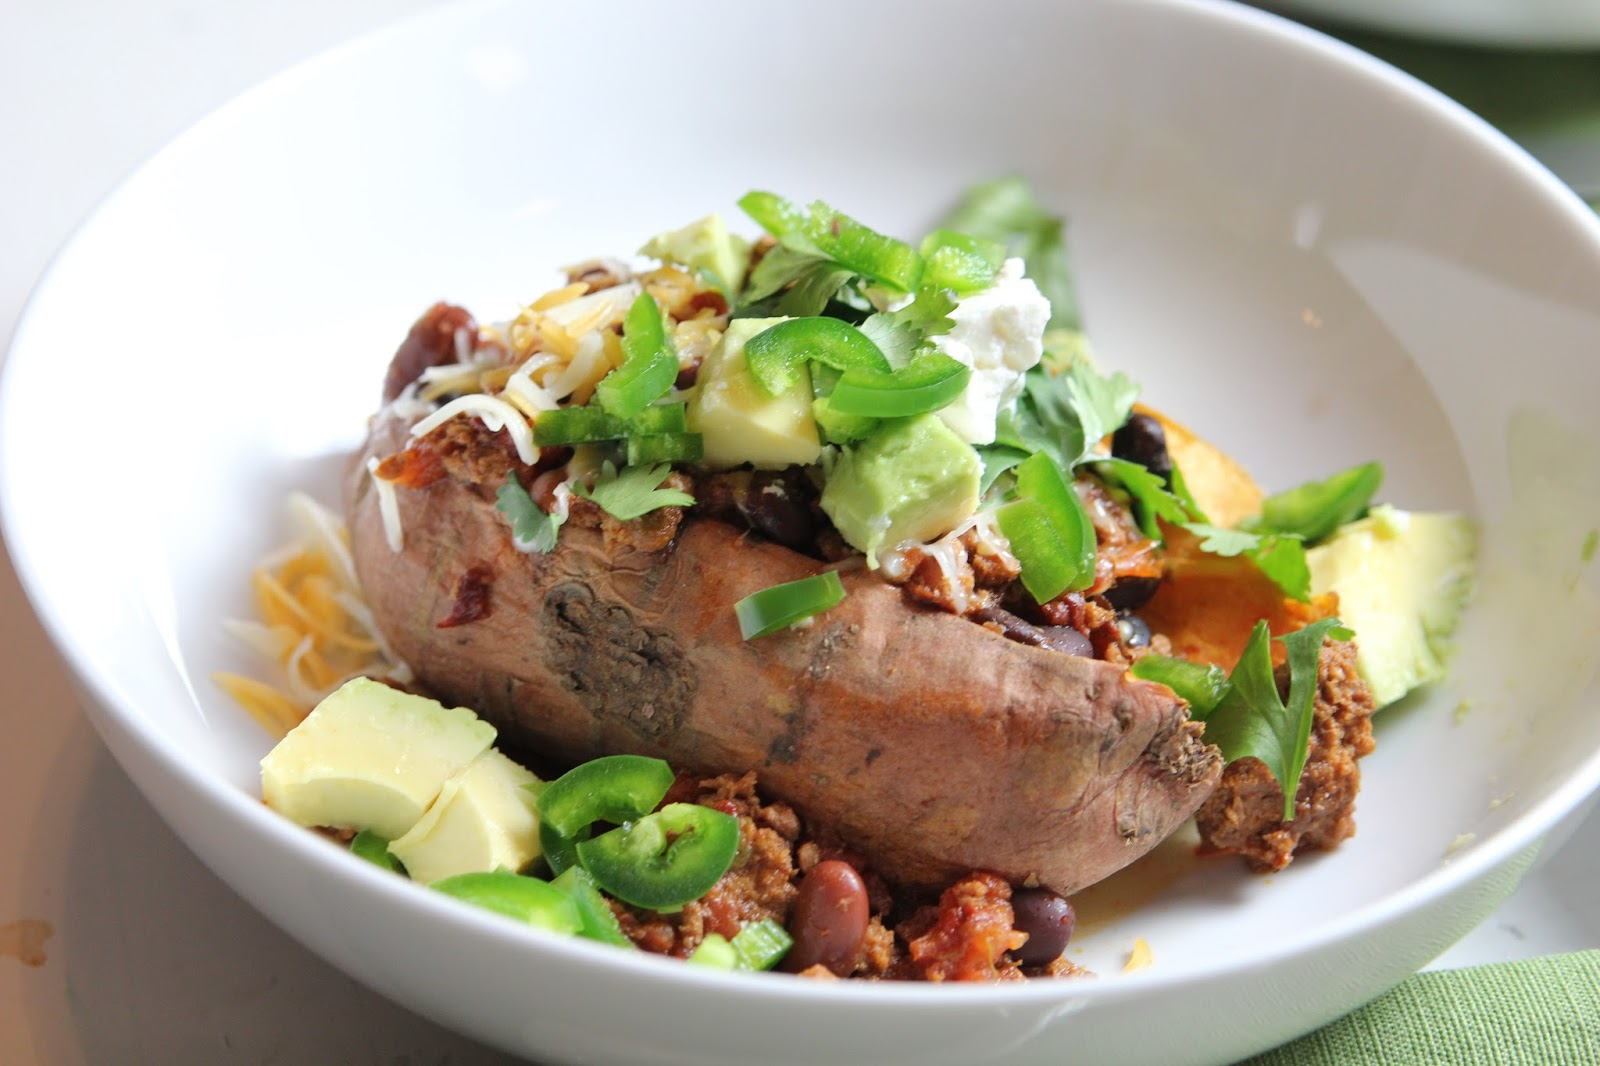 carmen's kitch: Loaded Baked Sweet Potato with Mexican Slow Cooker ...